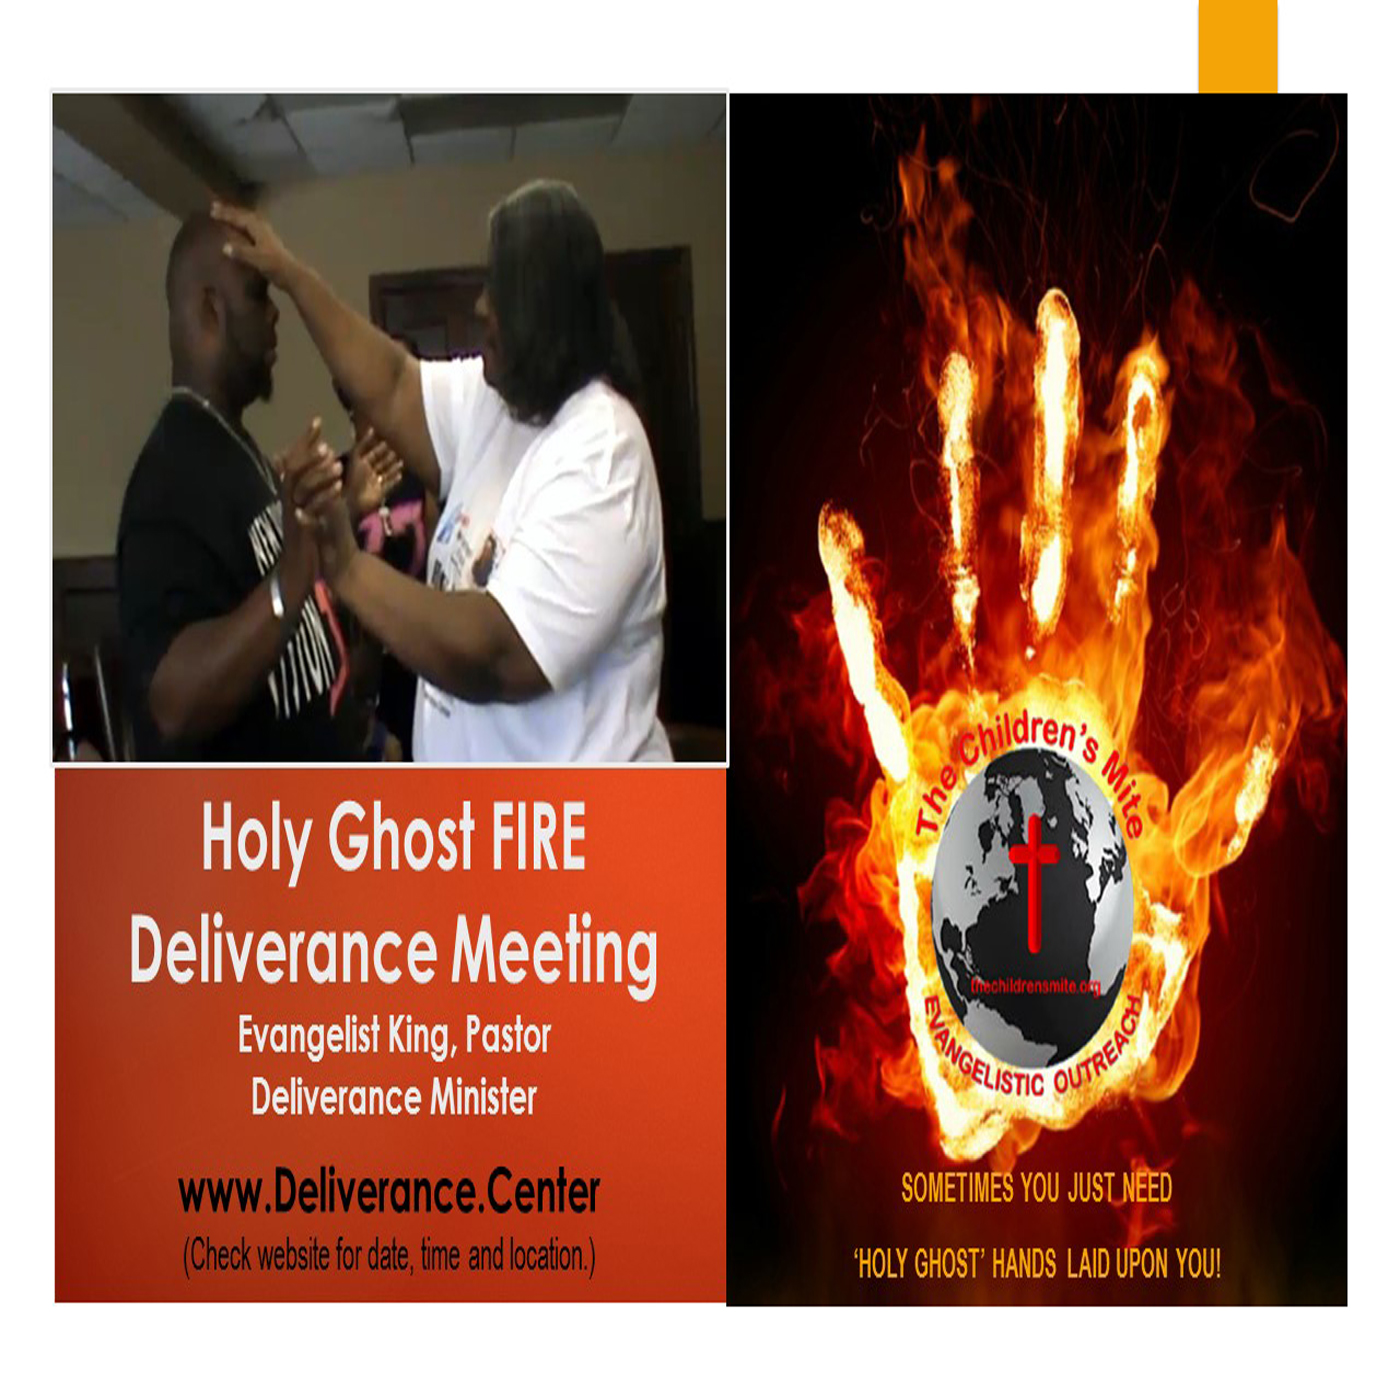 05-18-19 | Holy Ghost FIRE Deliverance Meeting